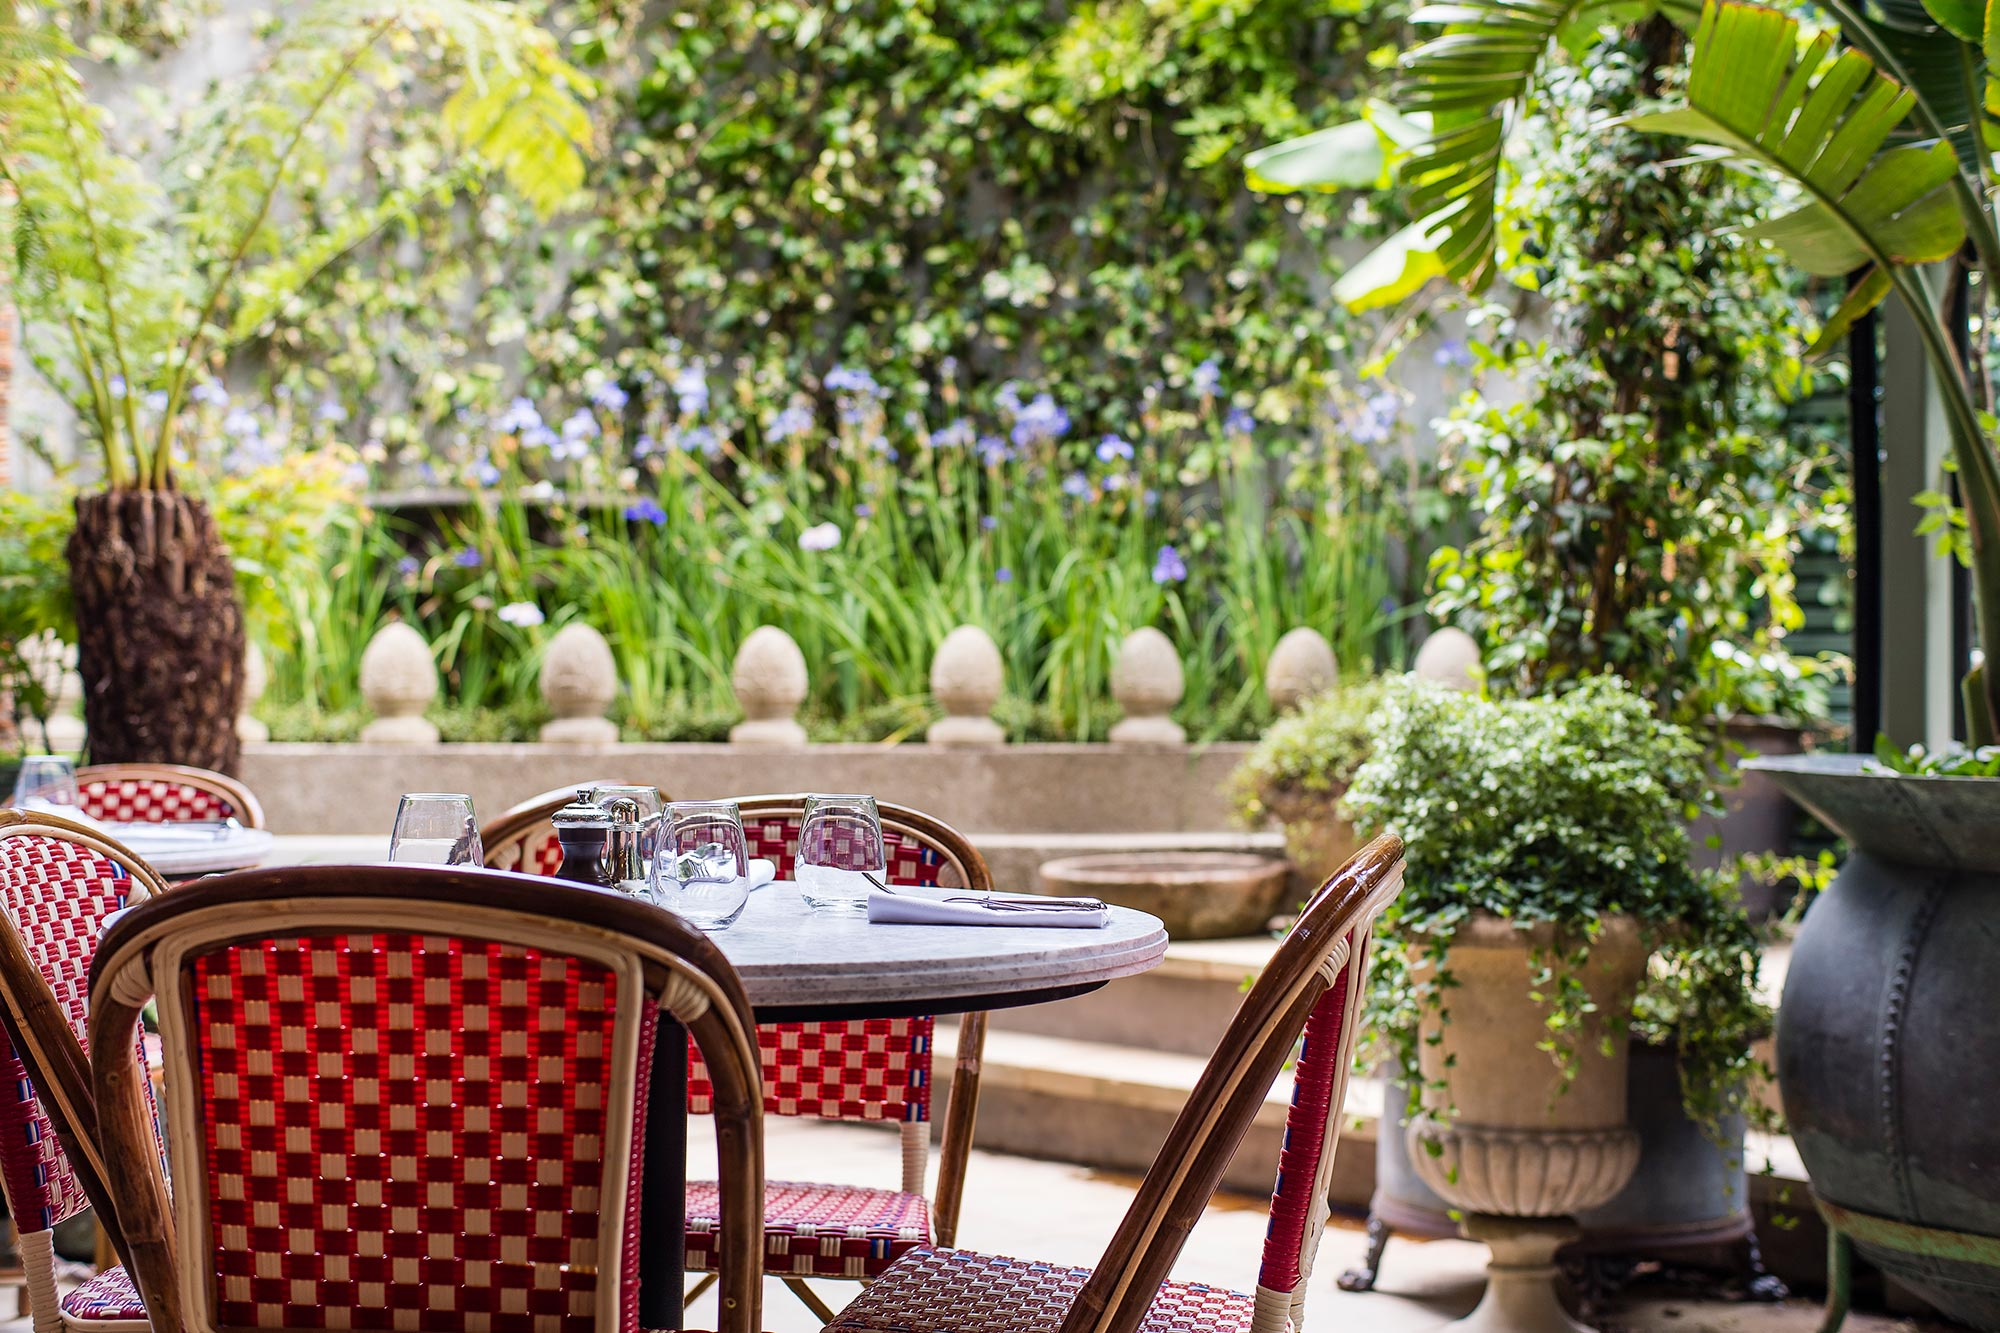 Lunch near Liverpool Street - The Ivy City Garden - The Ivy City Garden